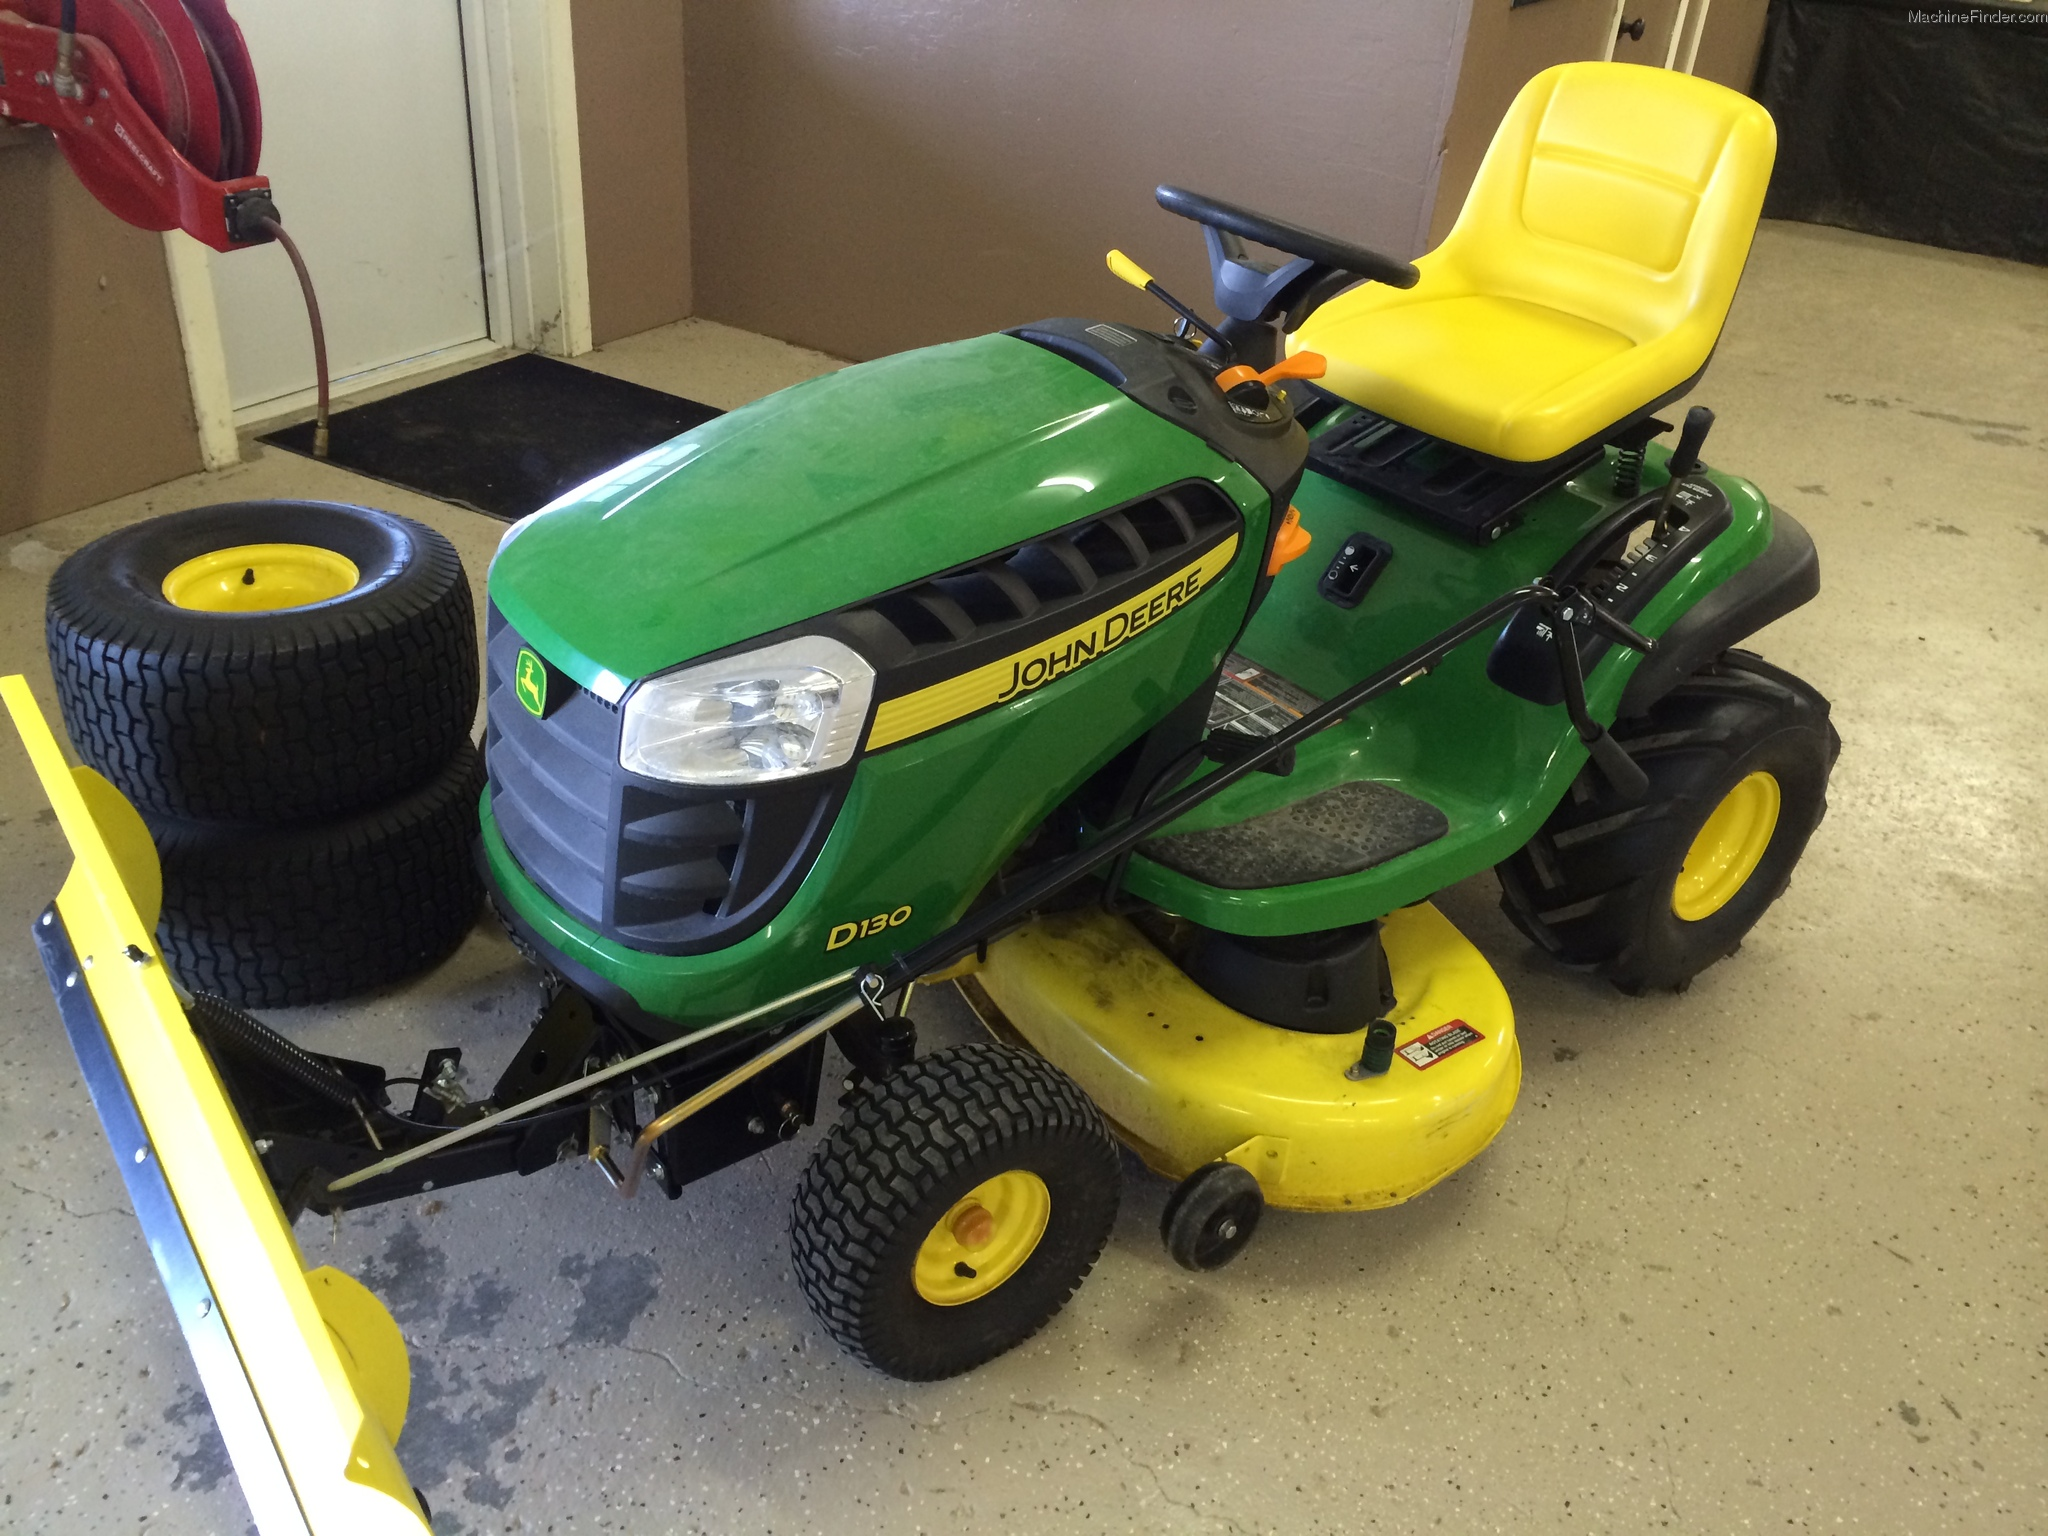 2011 John Deere D130 Lawn Amp Garden And Commercial Mowing